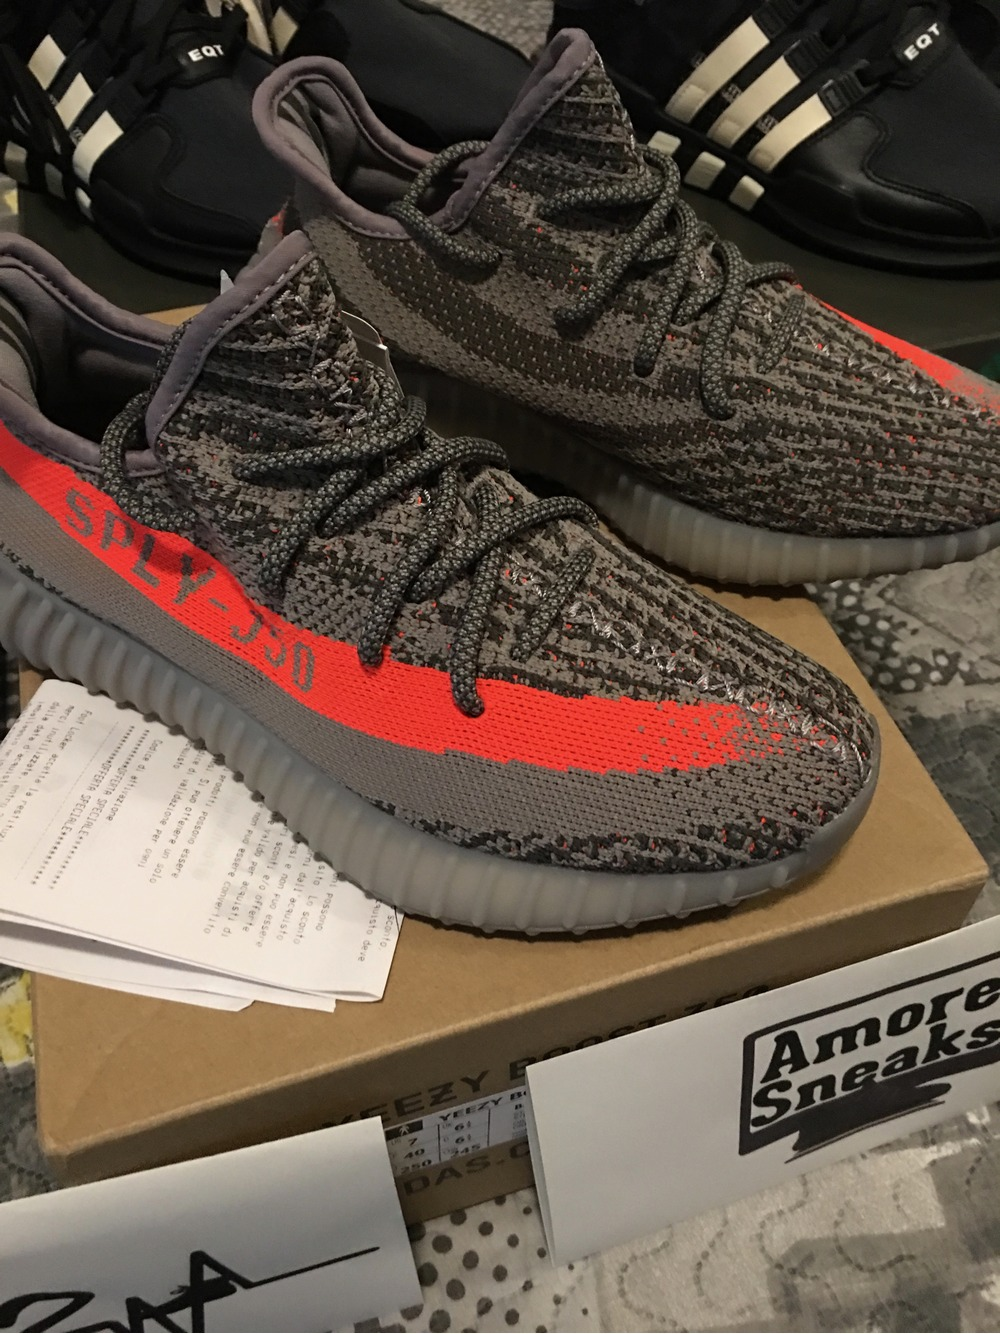 How To Get Yeezy Boost 350 V2 Pirate Black adidas Confirmed